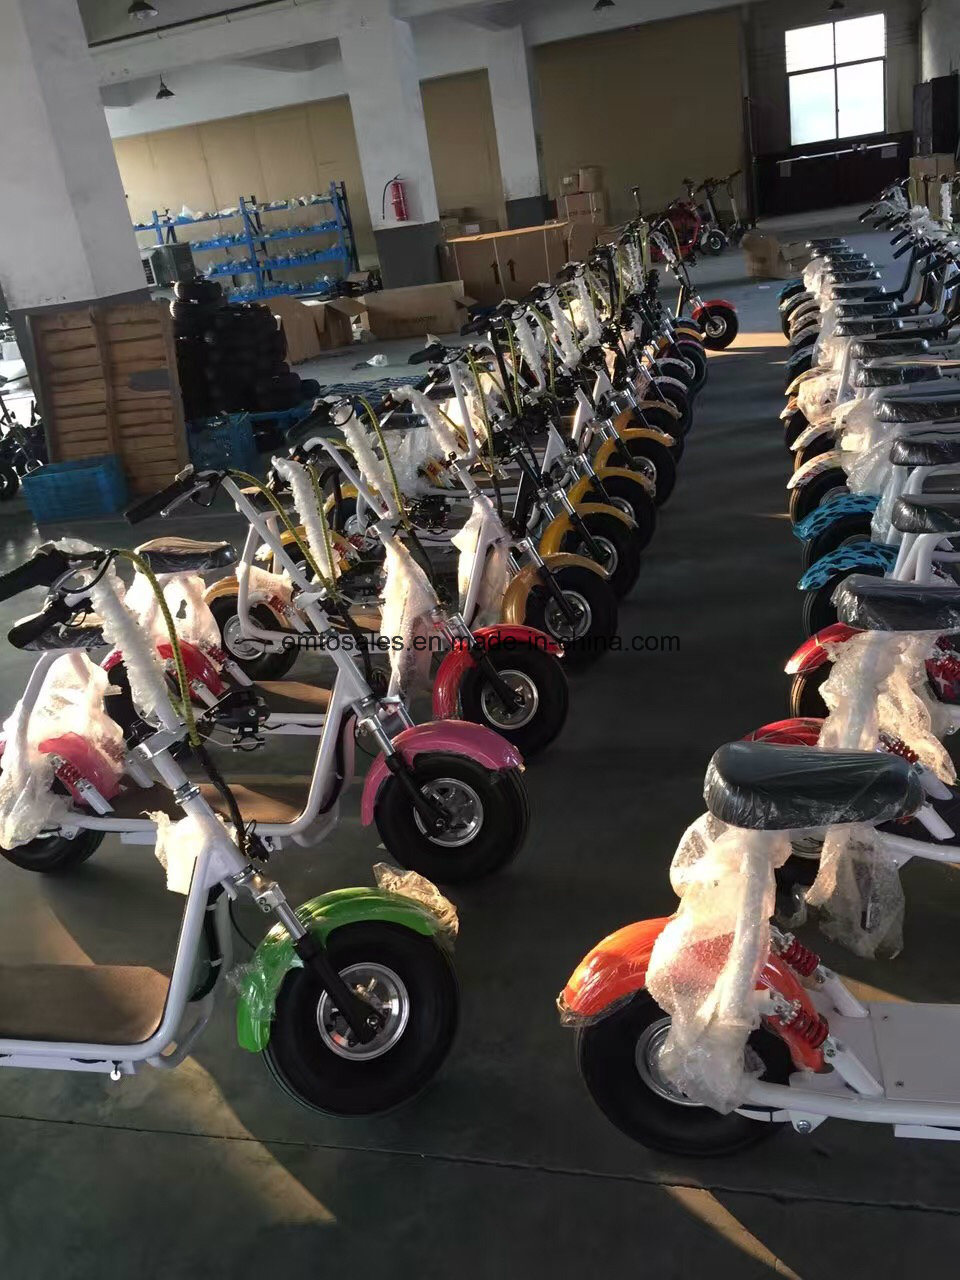 2016 New Big Wheel 500W City Coco Electric Scooter Electrical Mobility Scooter Kick Scooter